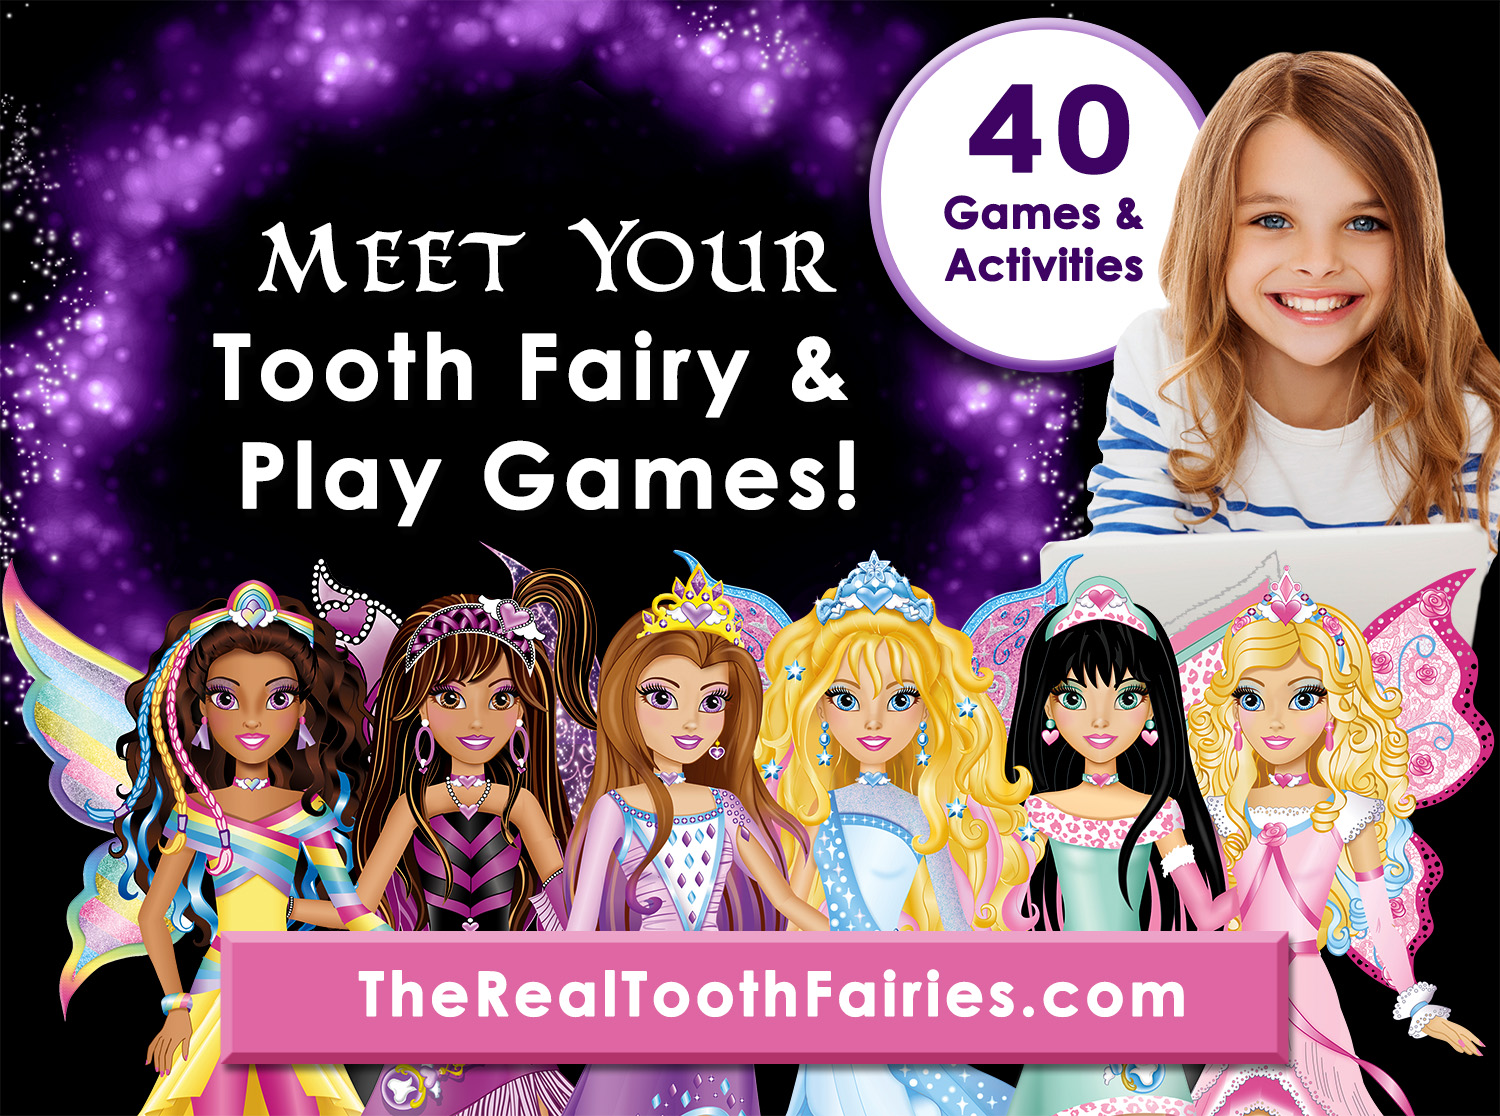 Meet Your Real Tooth Fairy Game